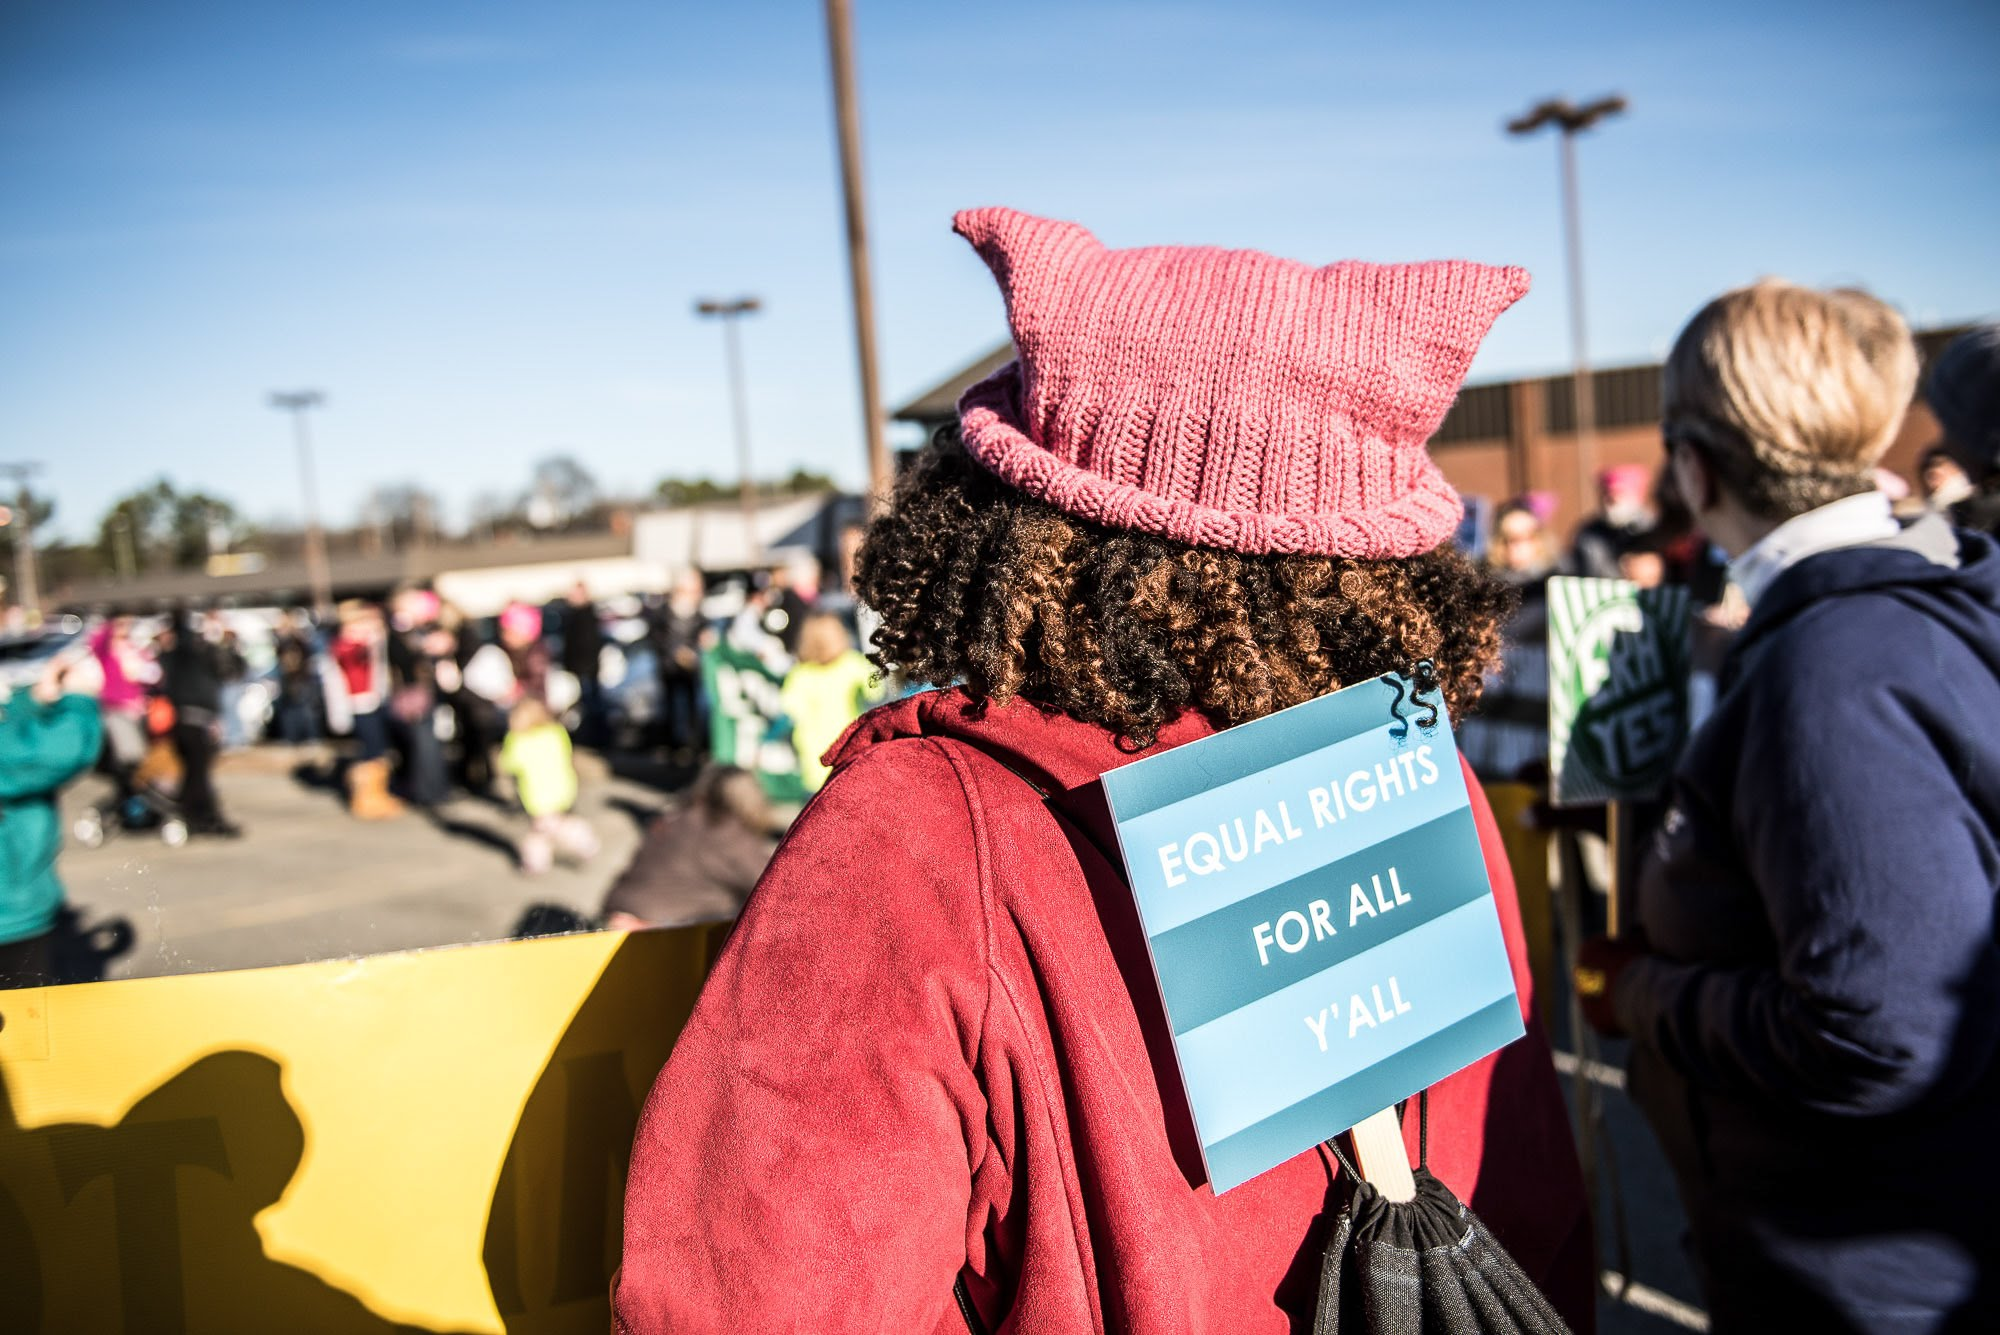 EVERGIB_WomensMarchRVA2018-7992.jpg